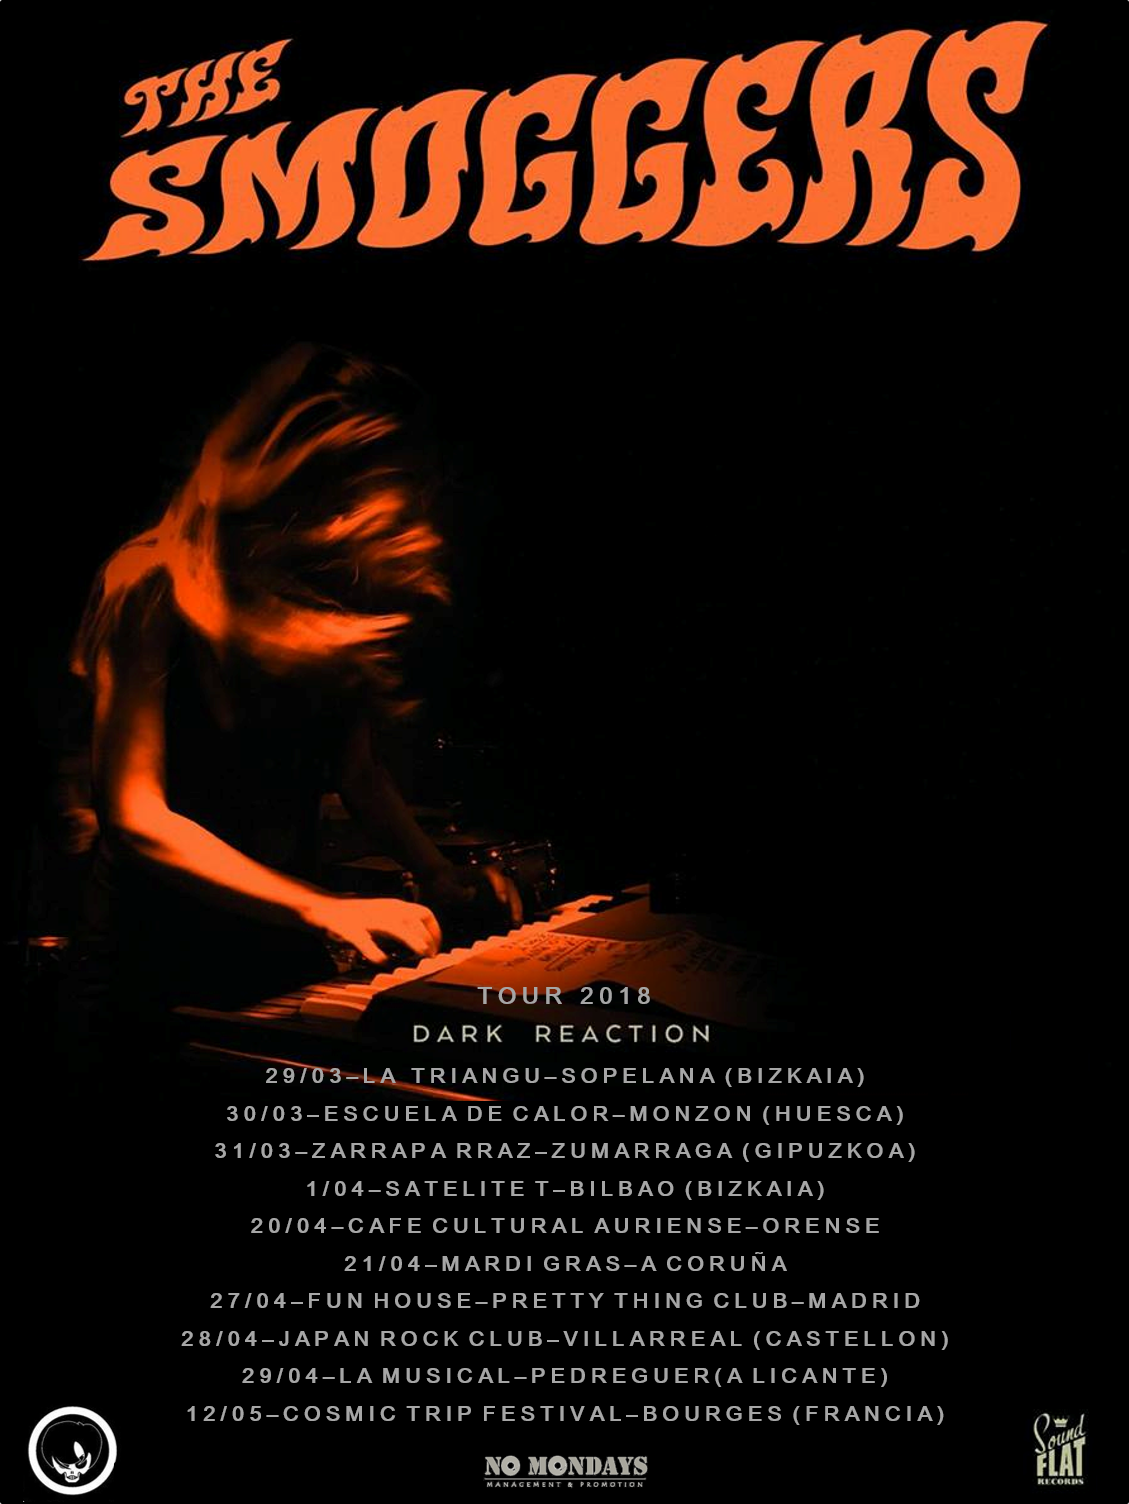 The Smoggers - Dark Reaction Tour 2018